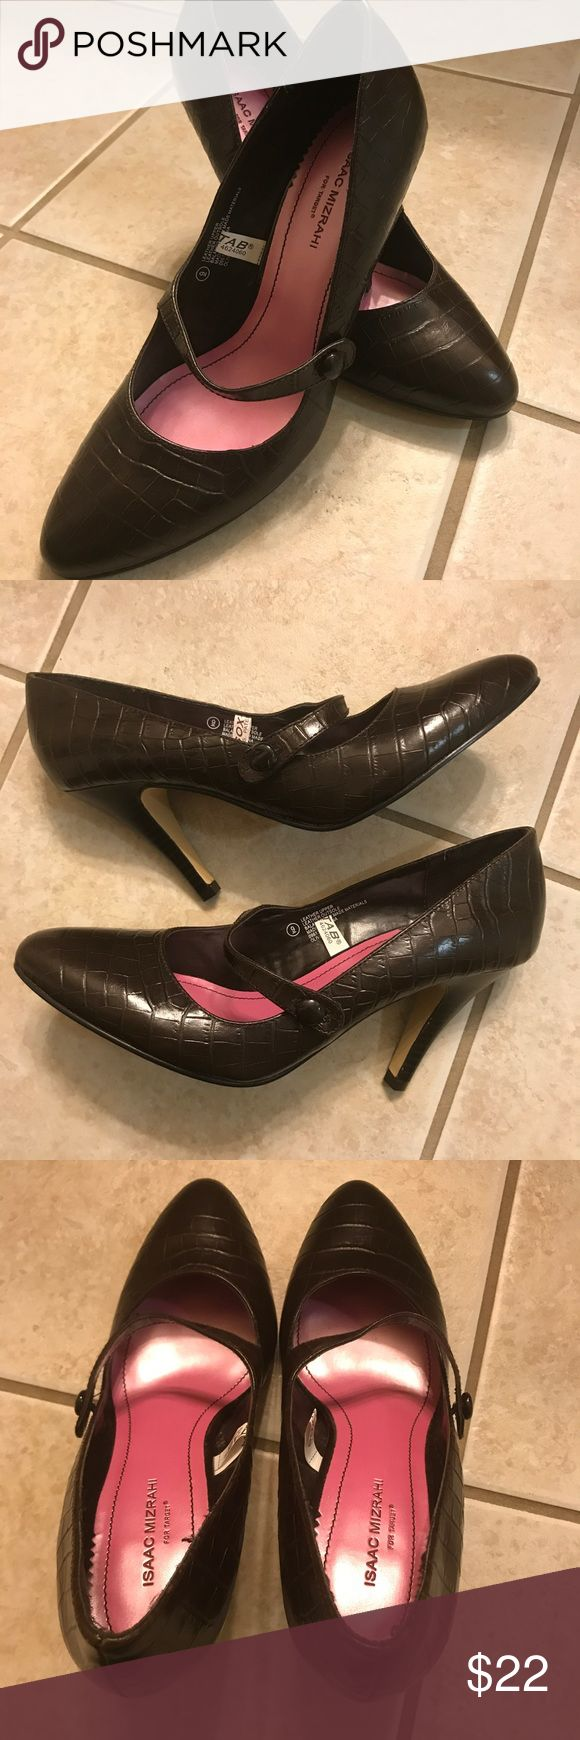 Isaac Mizrahi Target 9 leather Mary Jane olive Isaac Mizrahi for Target size 9 Mary Jane pumps/heels. Brown leather upper patterned, called Olive. Isaac Mizrahi Shoes